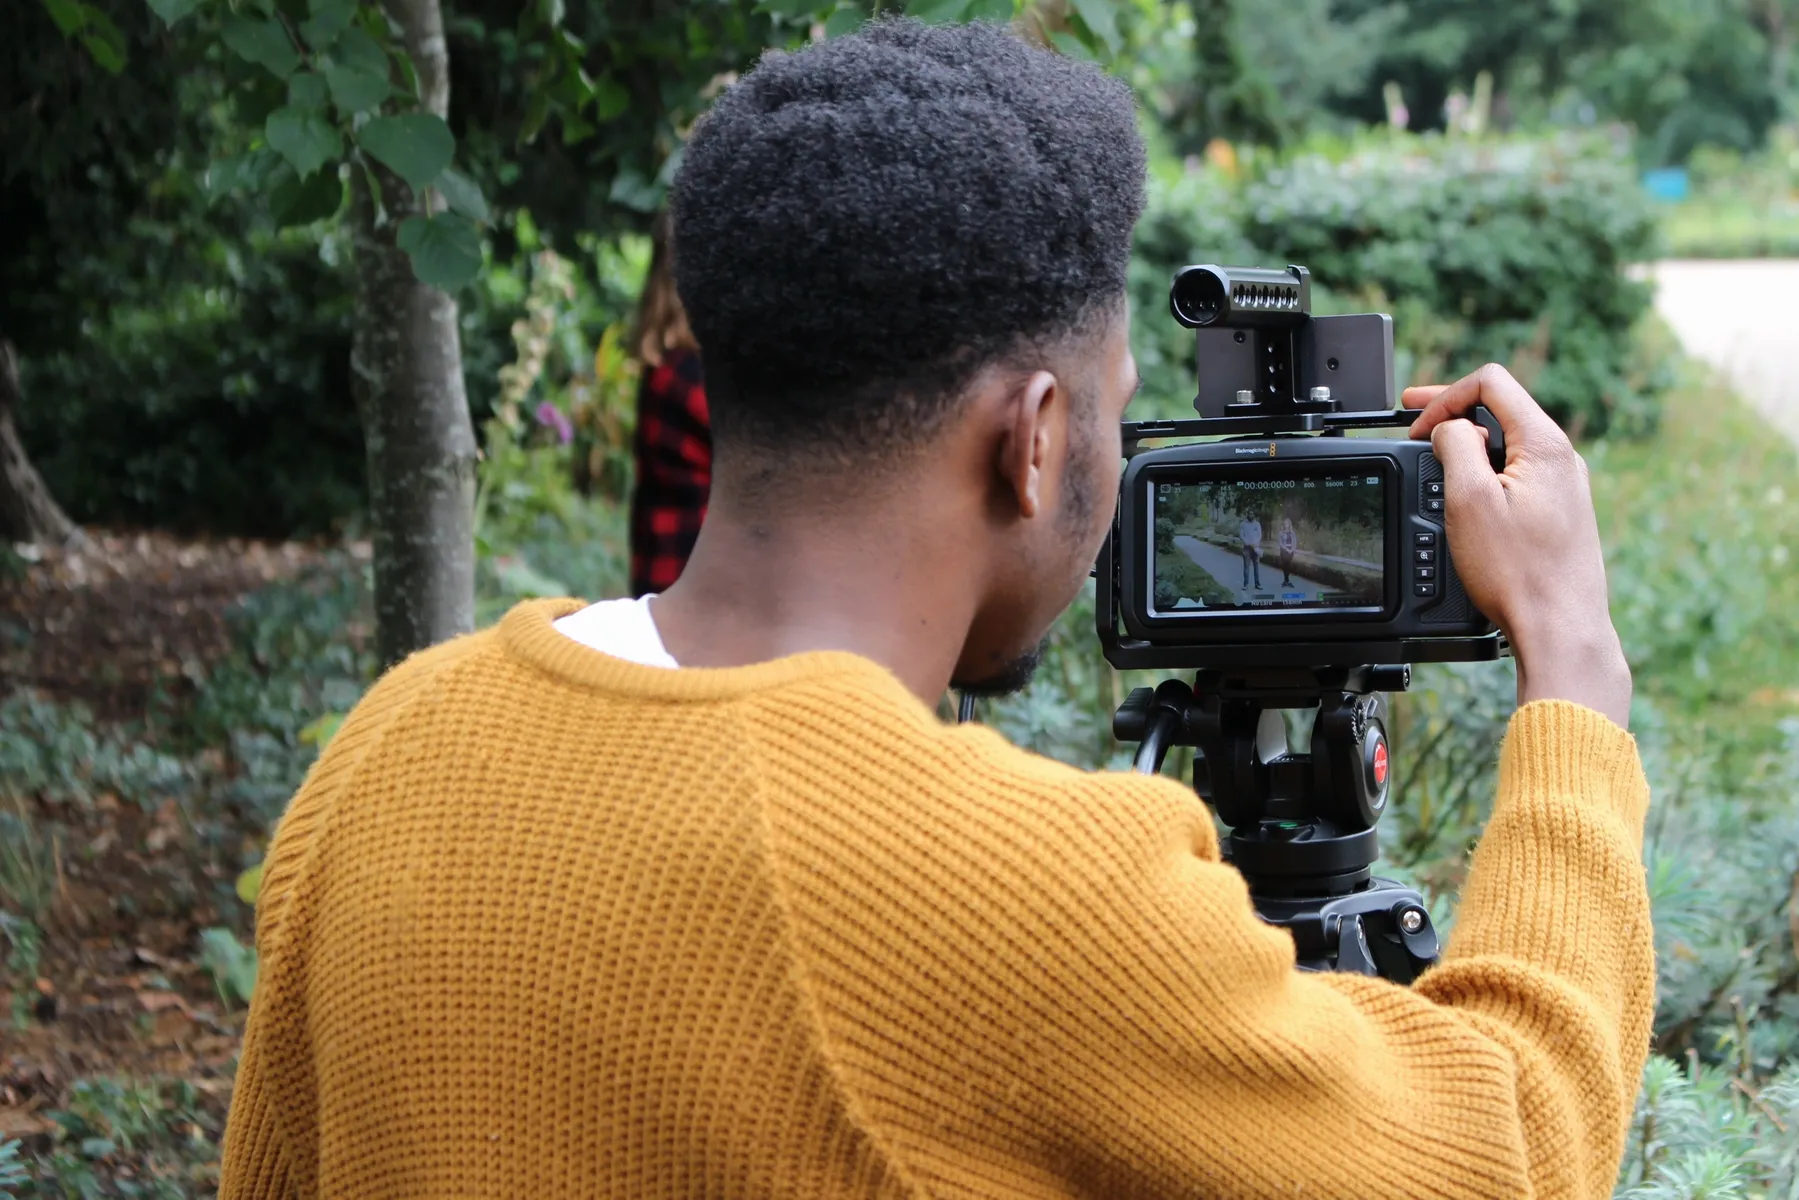 Behind the scenes from short film Fraudsters a Fresh Media Productions film, showing Director of Photography (DoP/DP) Matthias Djan operating on the Blackmagic Pocket Cinema Camera 4K as Cinematographer of the film